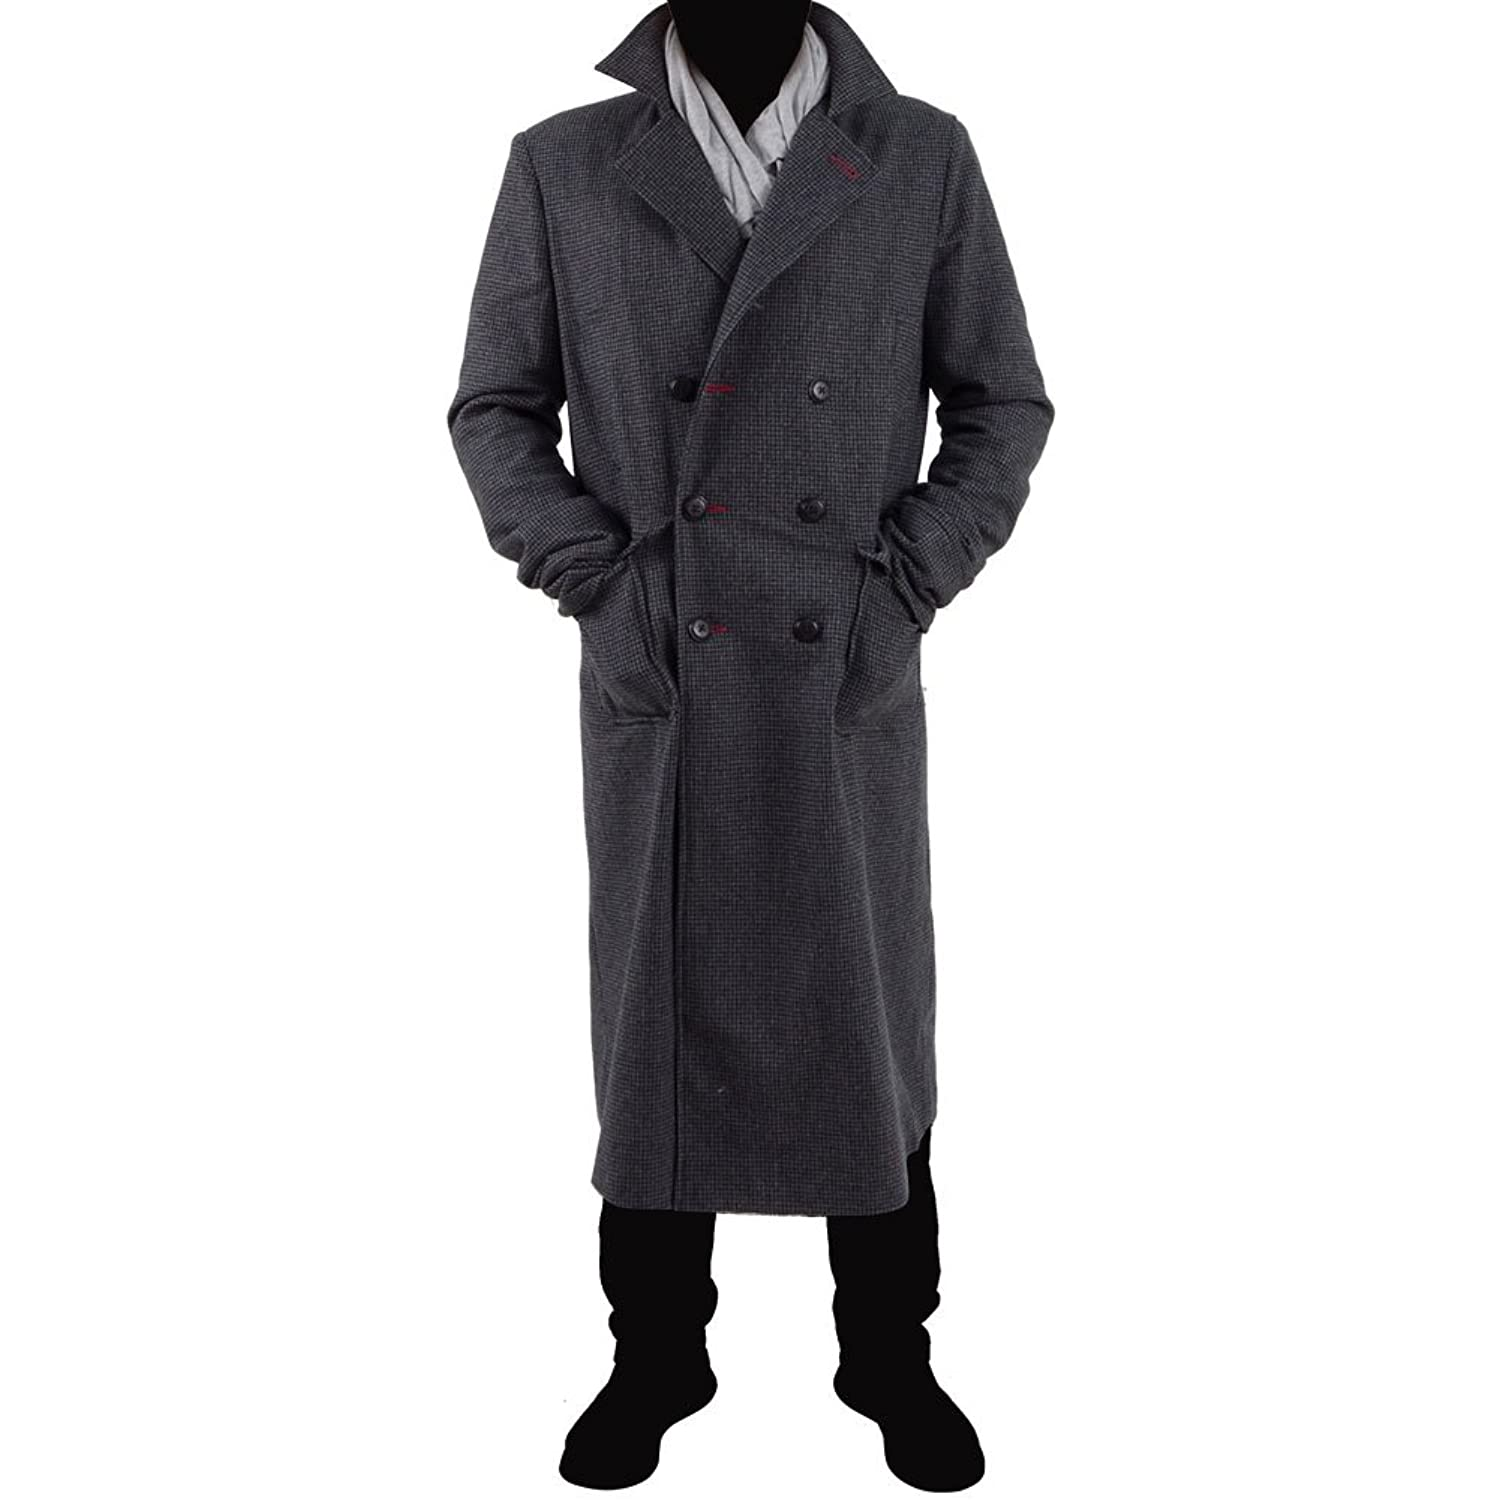 1940s Mens Clothing Mens Plaids And Tweeds Long Trench Coat Halloween Cosplay Costume Overcoat $100.00 AT vintagedancer.com